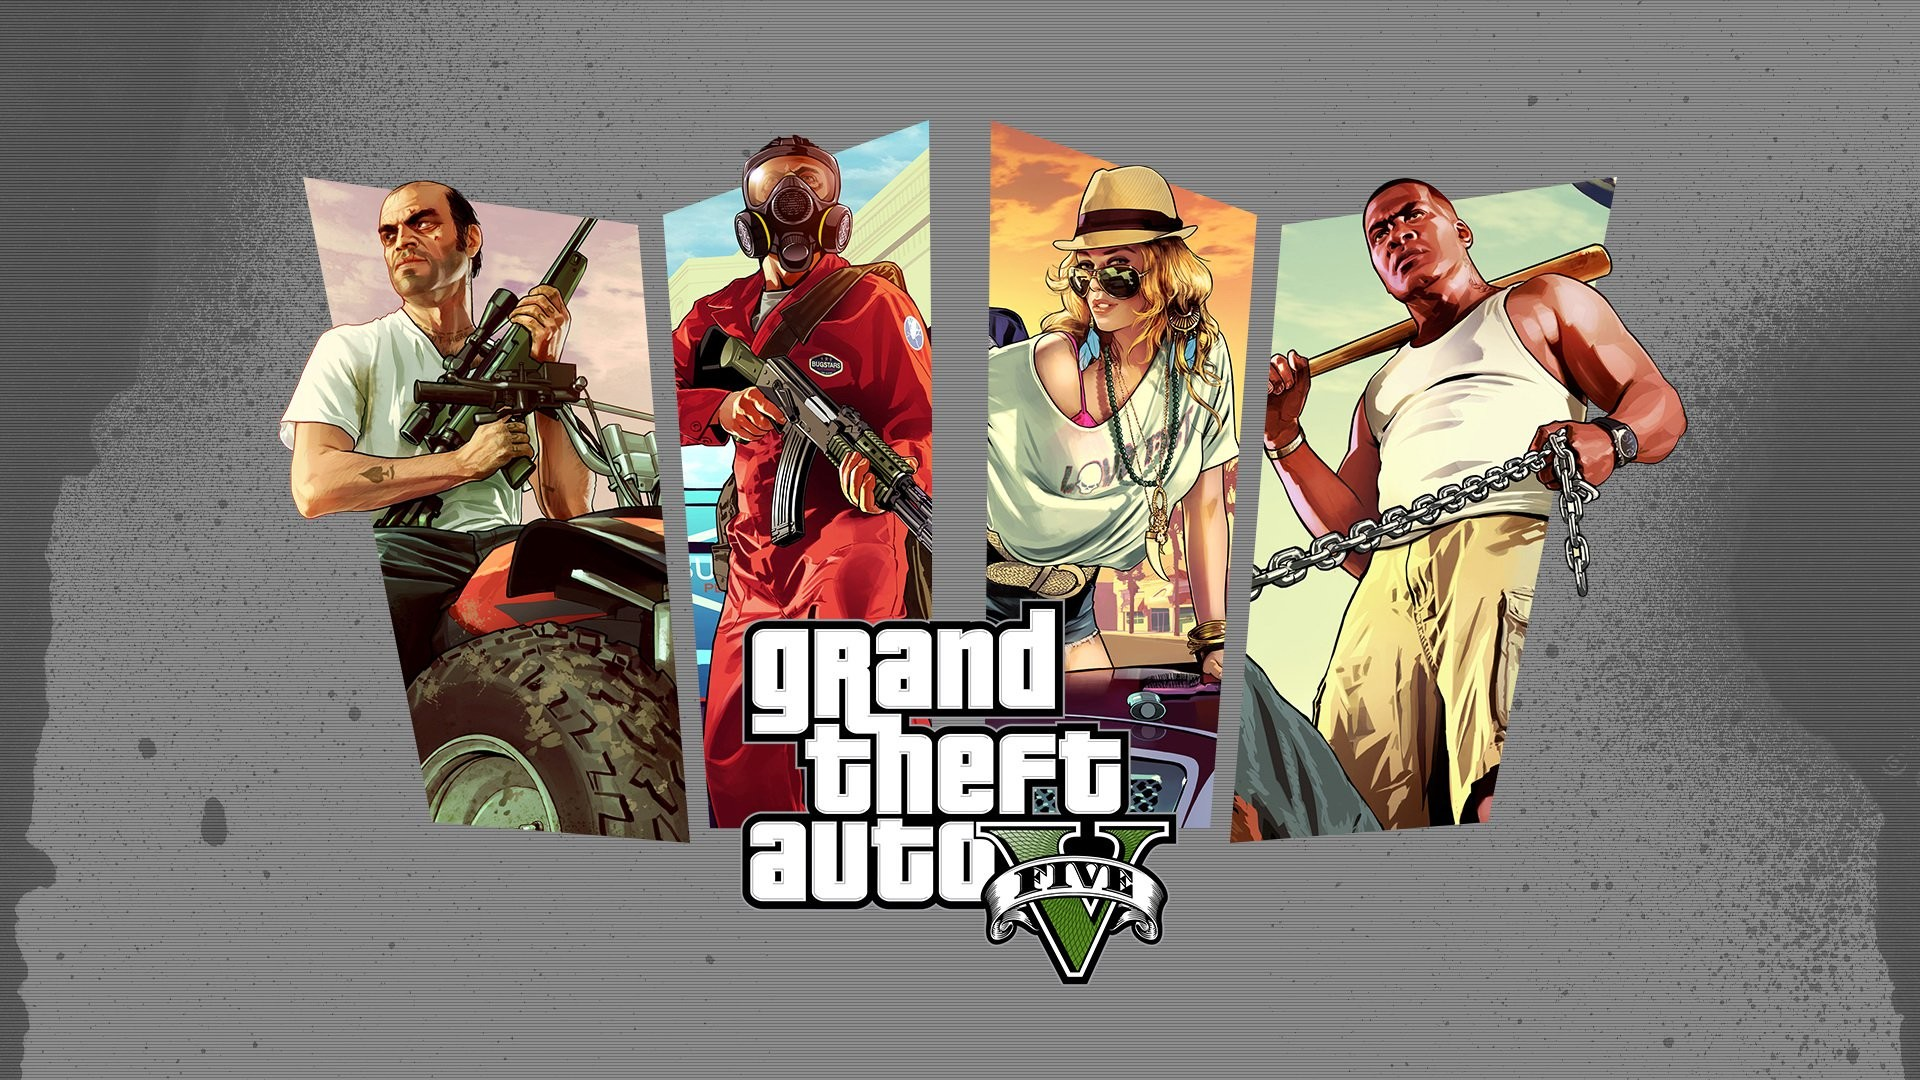 gta 5 wallpaper hd 1920x1080